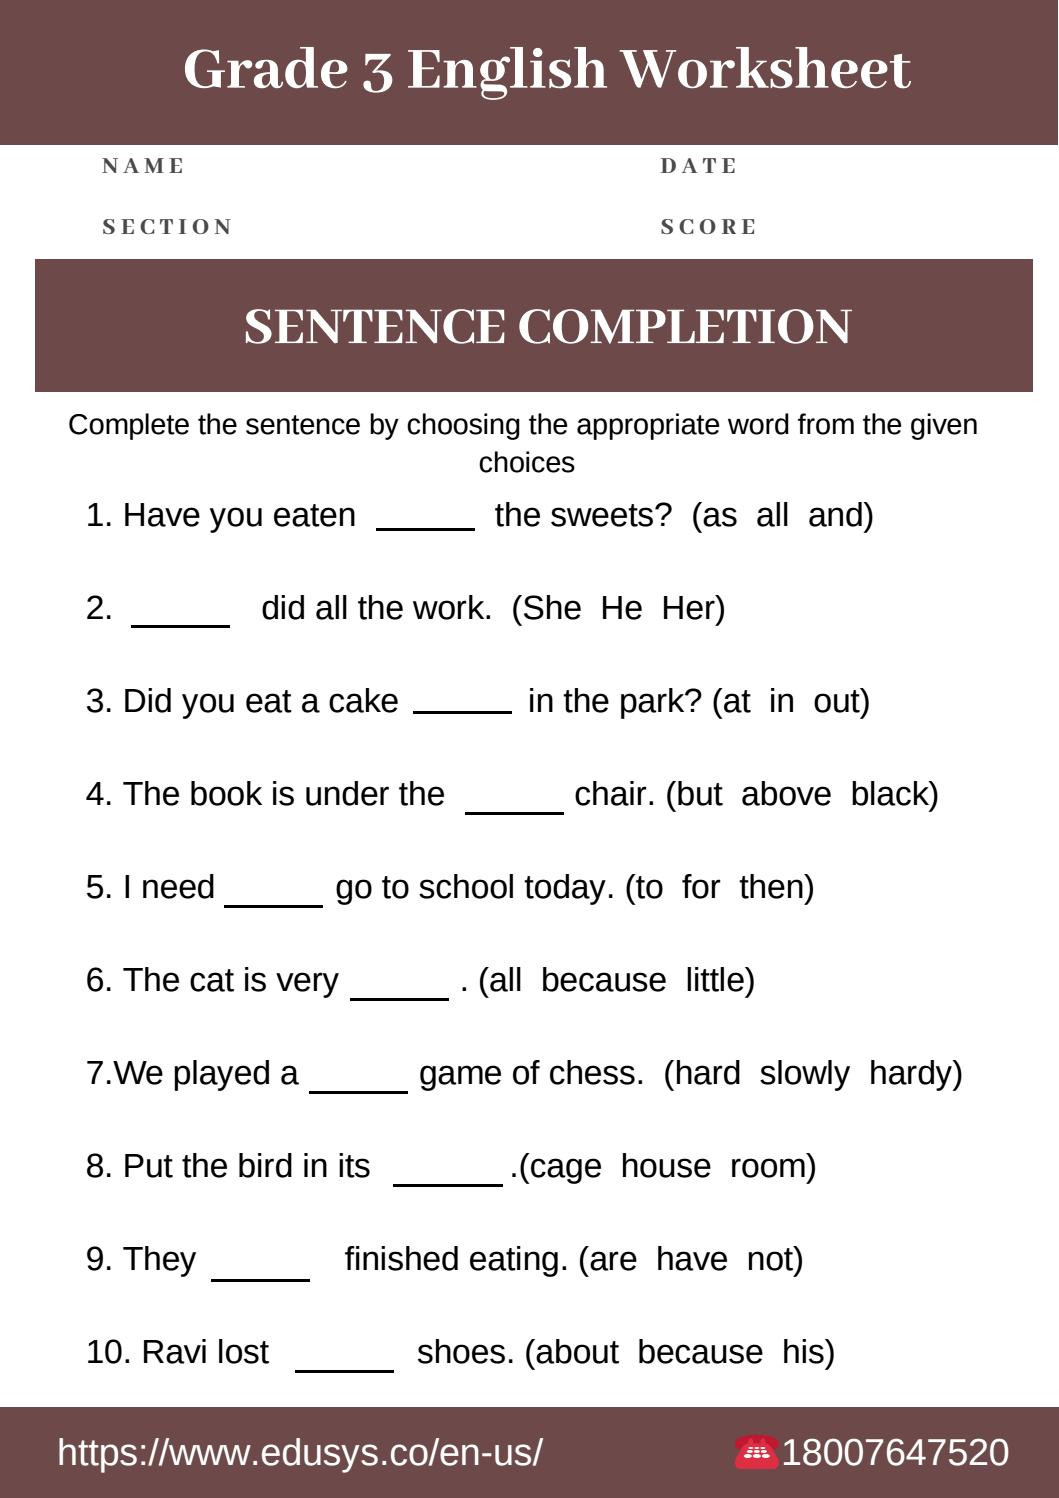 Grammar Worksheets Middle School Pdf 3rd Grade English Grammar Worksheet Free Pdf by Nithya issuu